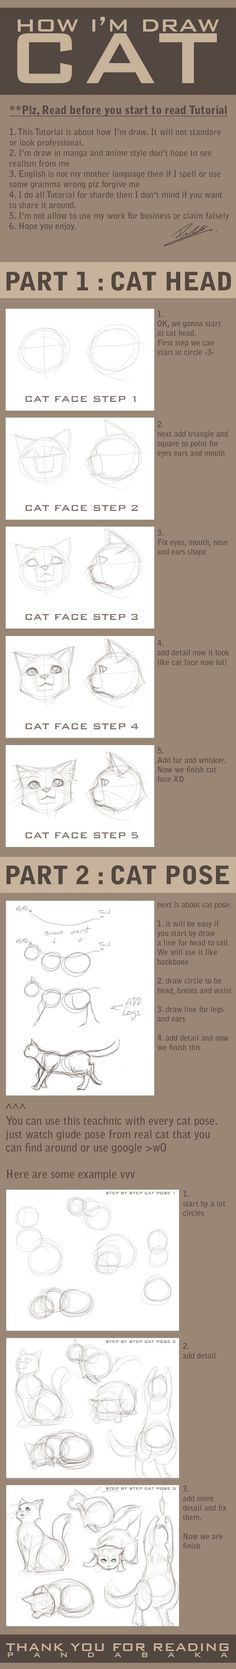 cat head/cat body tutorial                                                                                                                                                                                 More